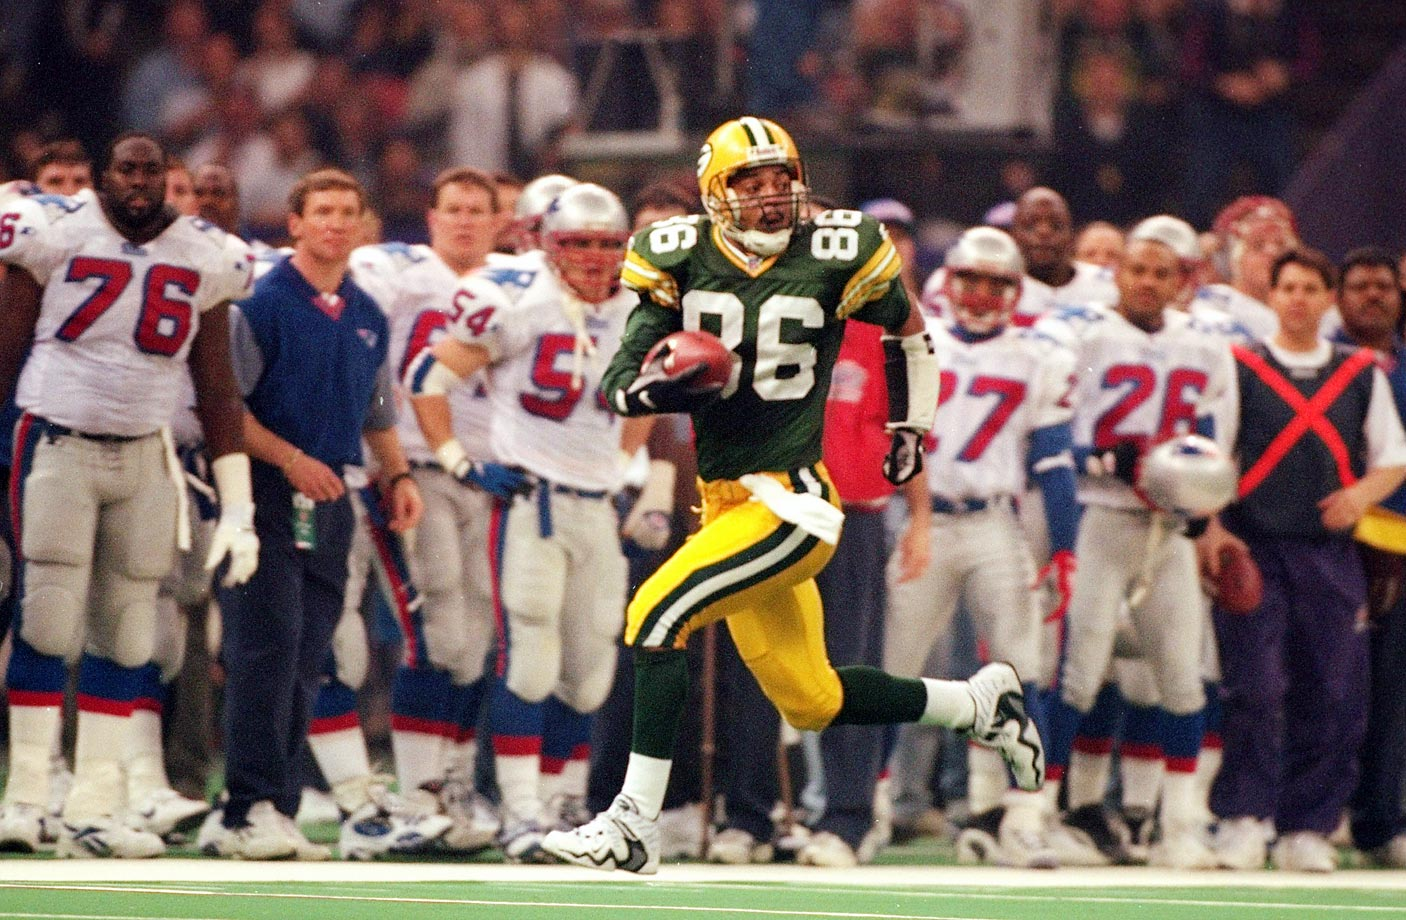 Antonio Freeman scored on a then-record 81-yard touchdown pass as Brett Favre helped the Packers win their first Super Bowl since SB II.